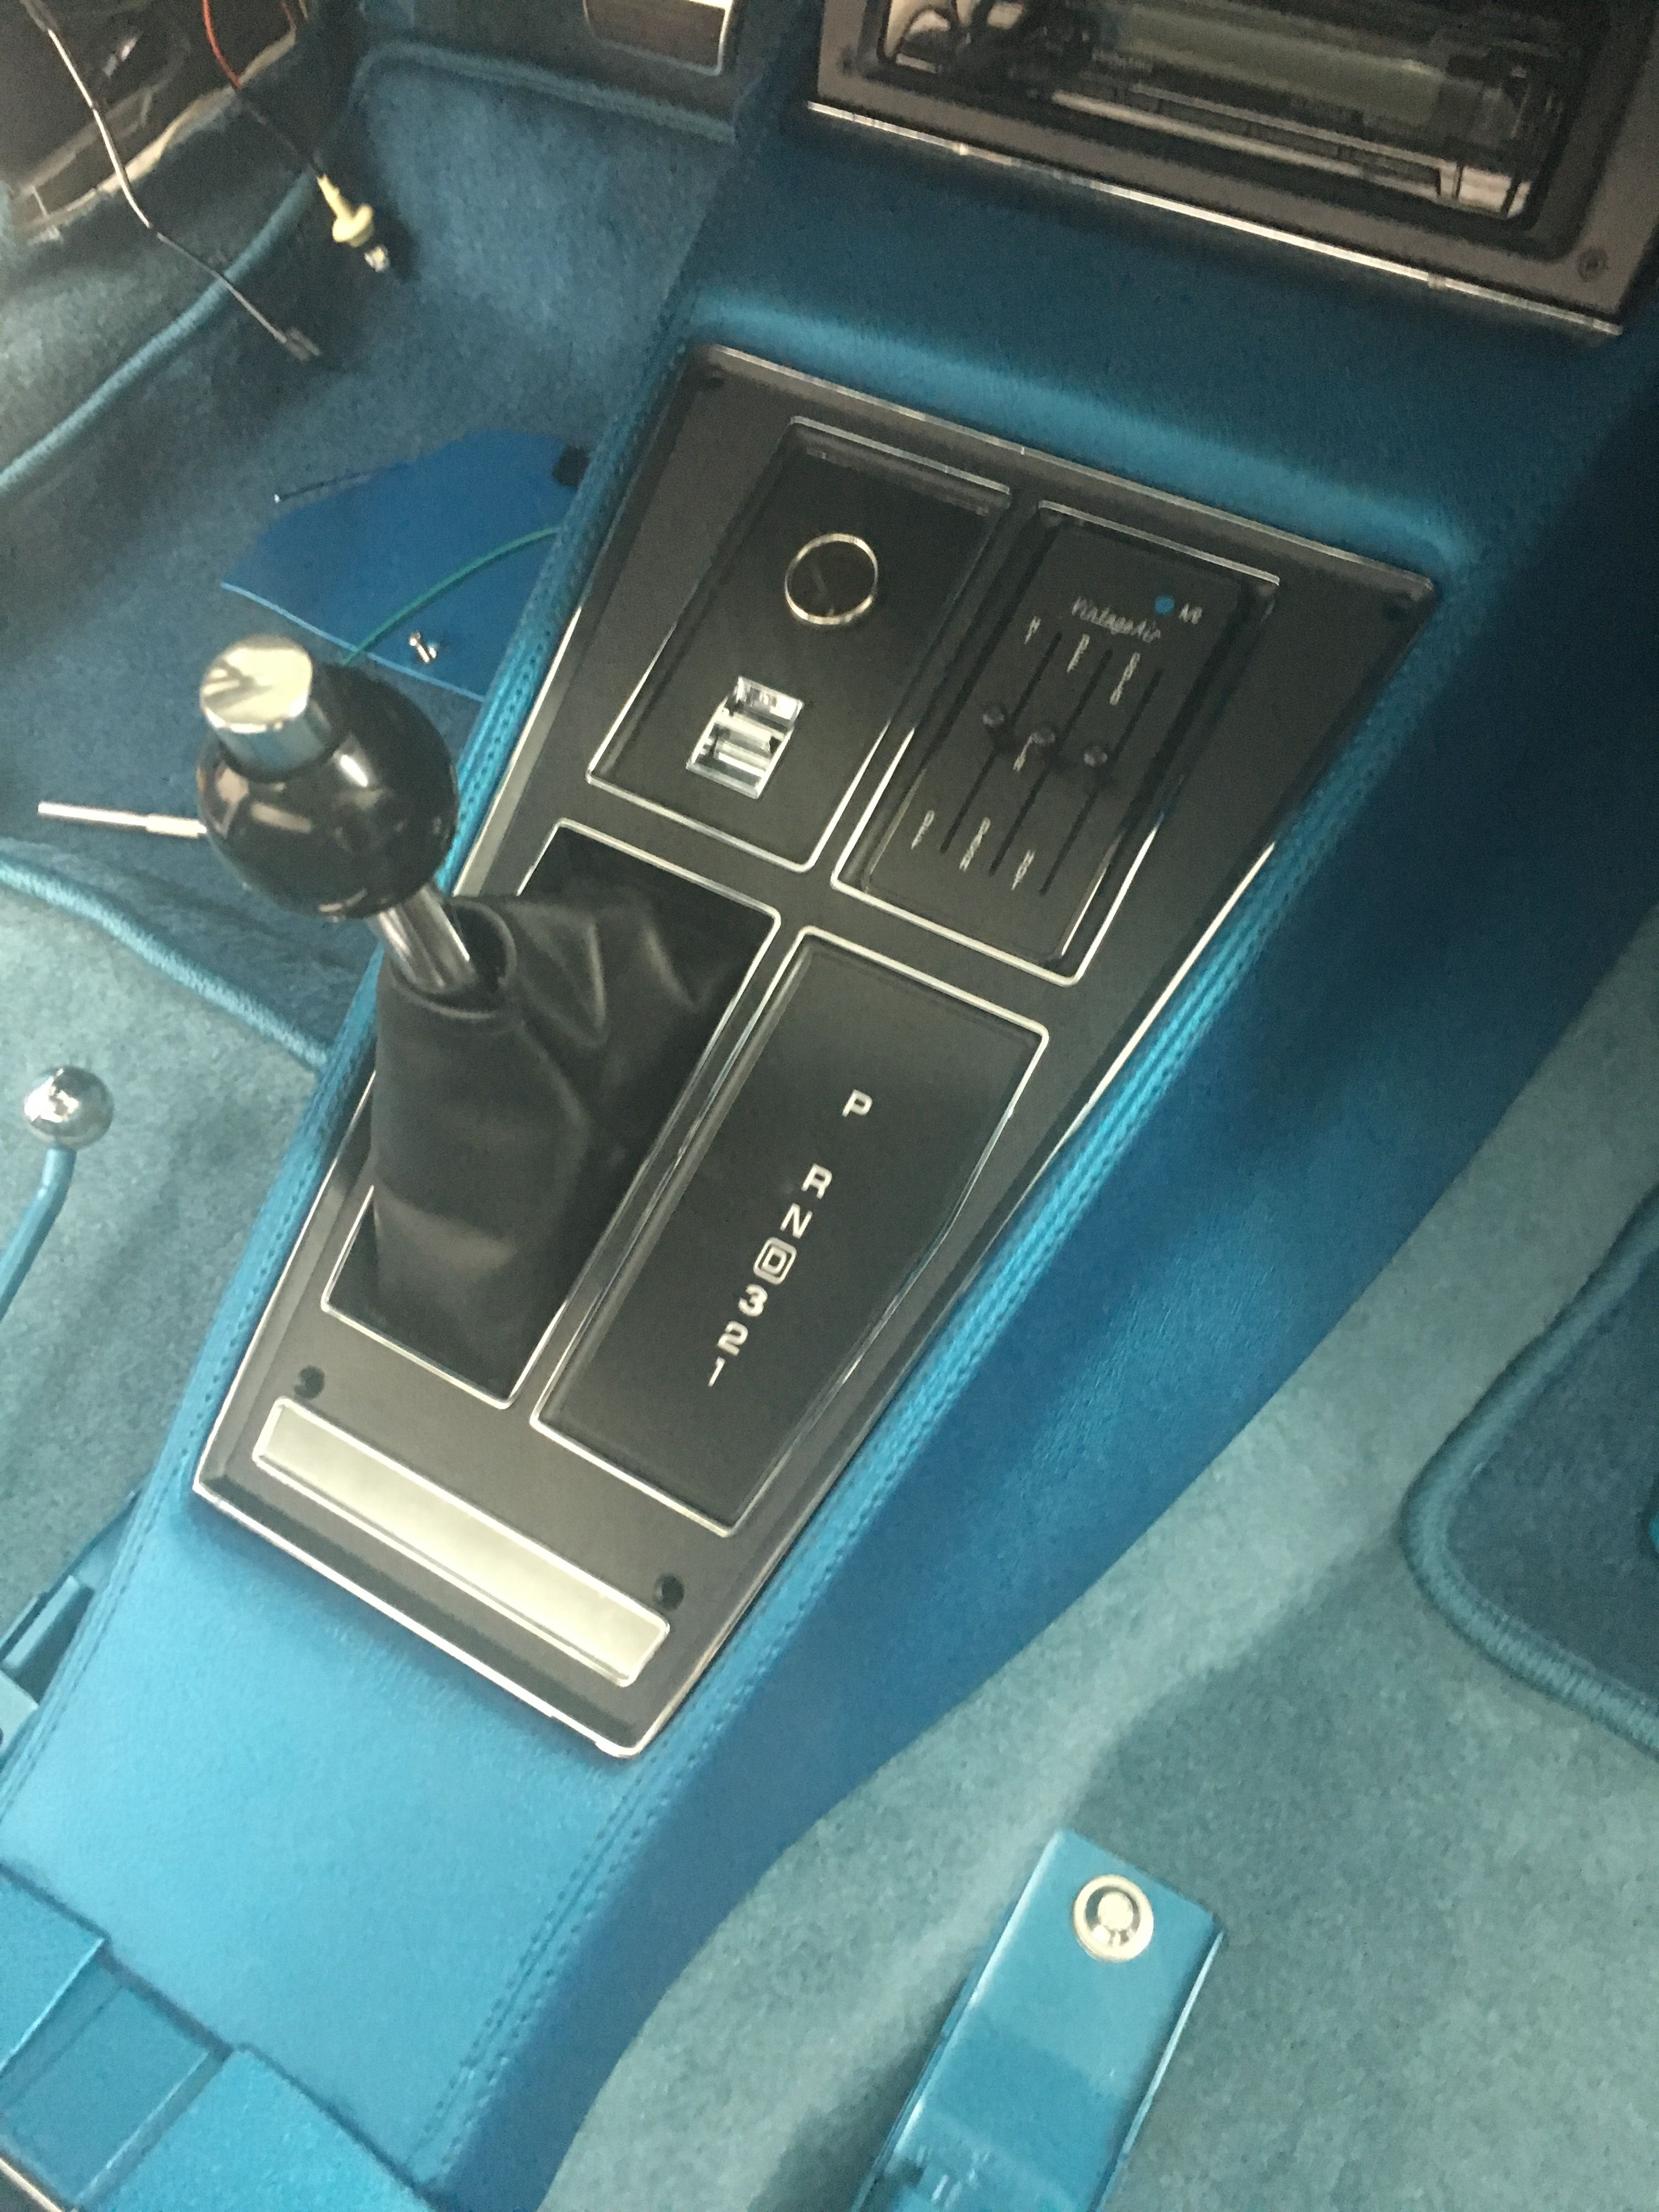 Manual To Auto Conversion And Vintage Ac Controls Switch Is For Electric Cowl Door 1969 Corvette Custom Cars Diy Design